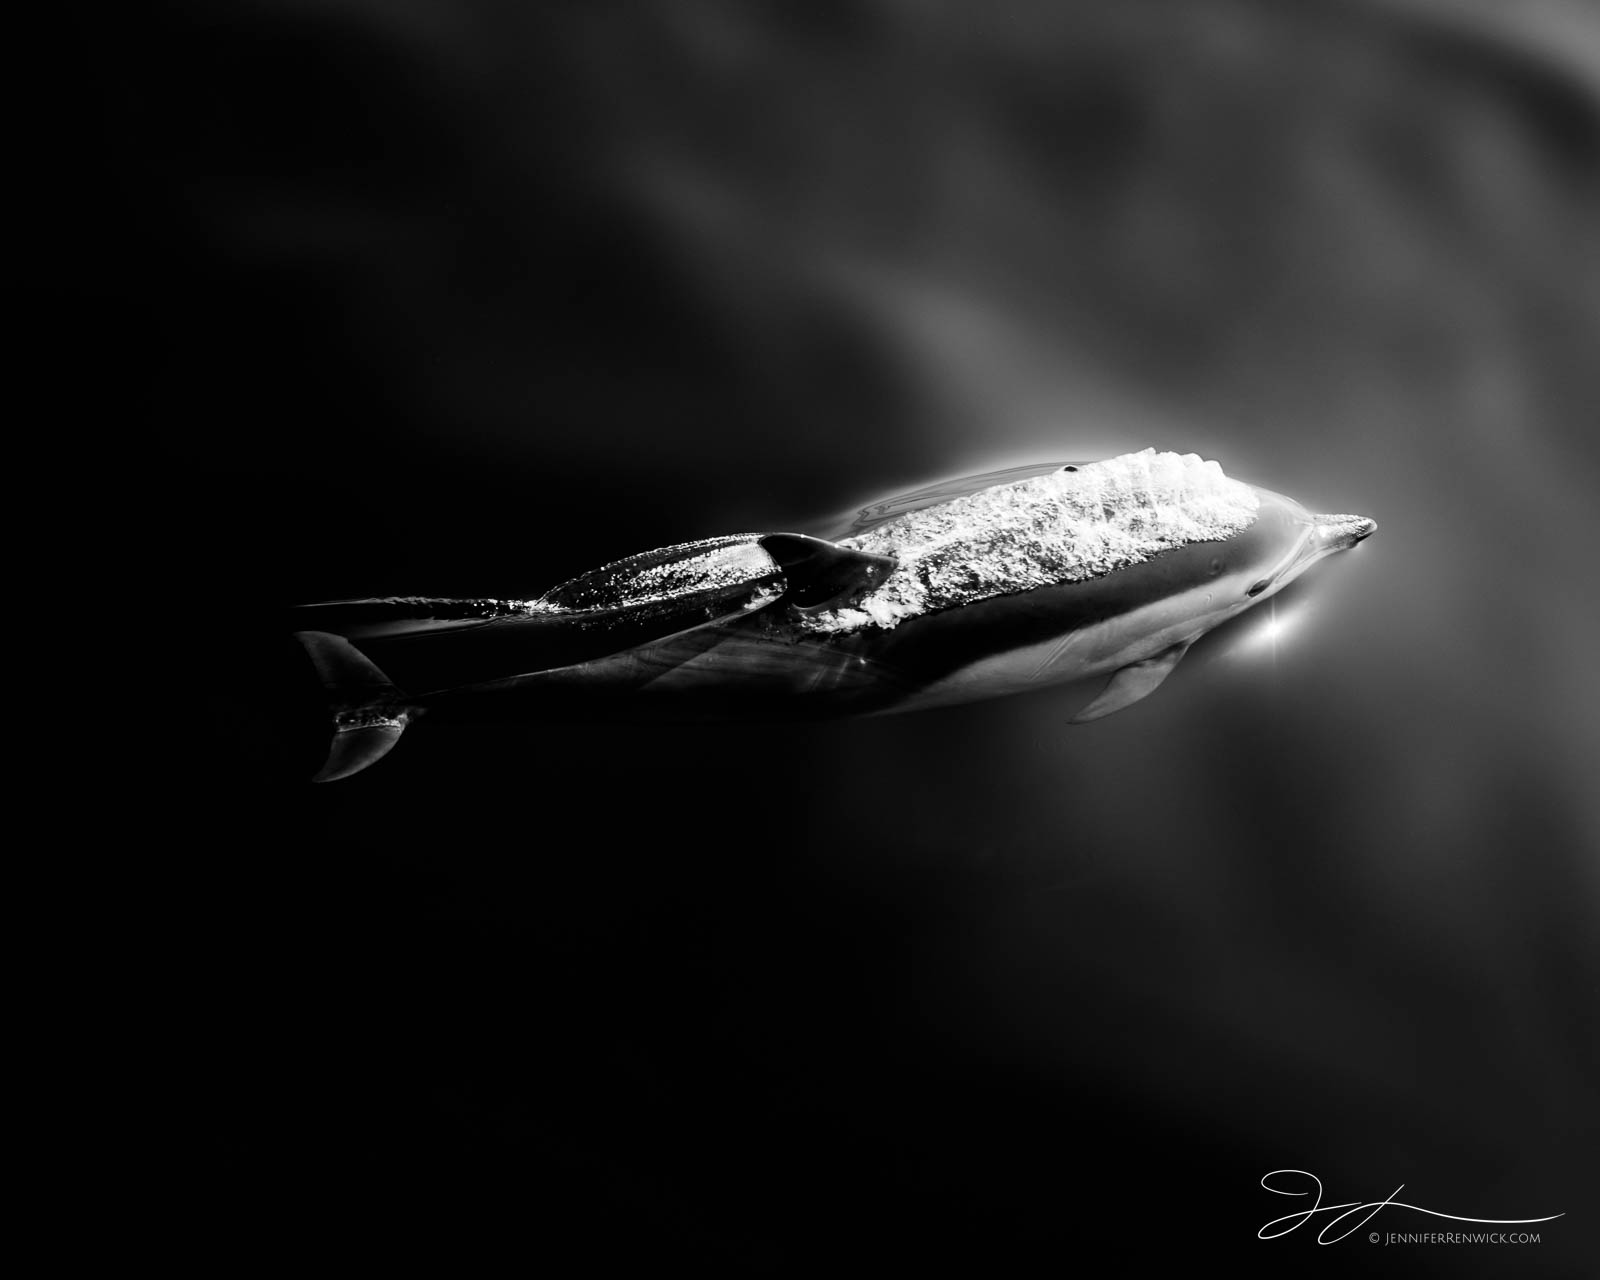 Dana point, black and white dolphin photography, black and white, California, common dolphins, dolphin photography,  wildlife, wild dolphins, monochrome, pod, Pacific Ocean, calf, photo